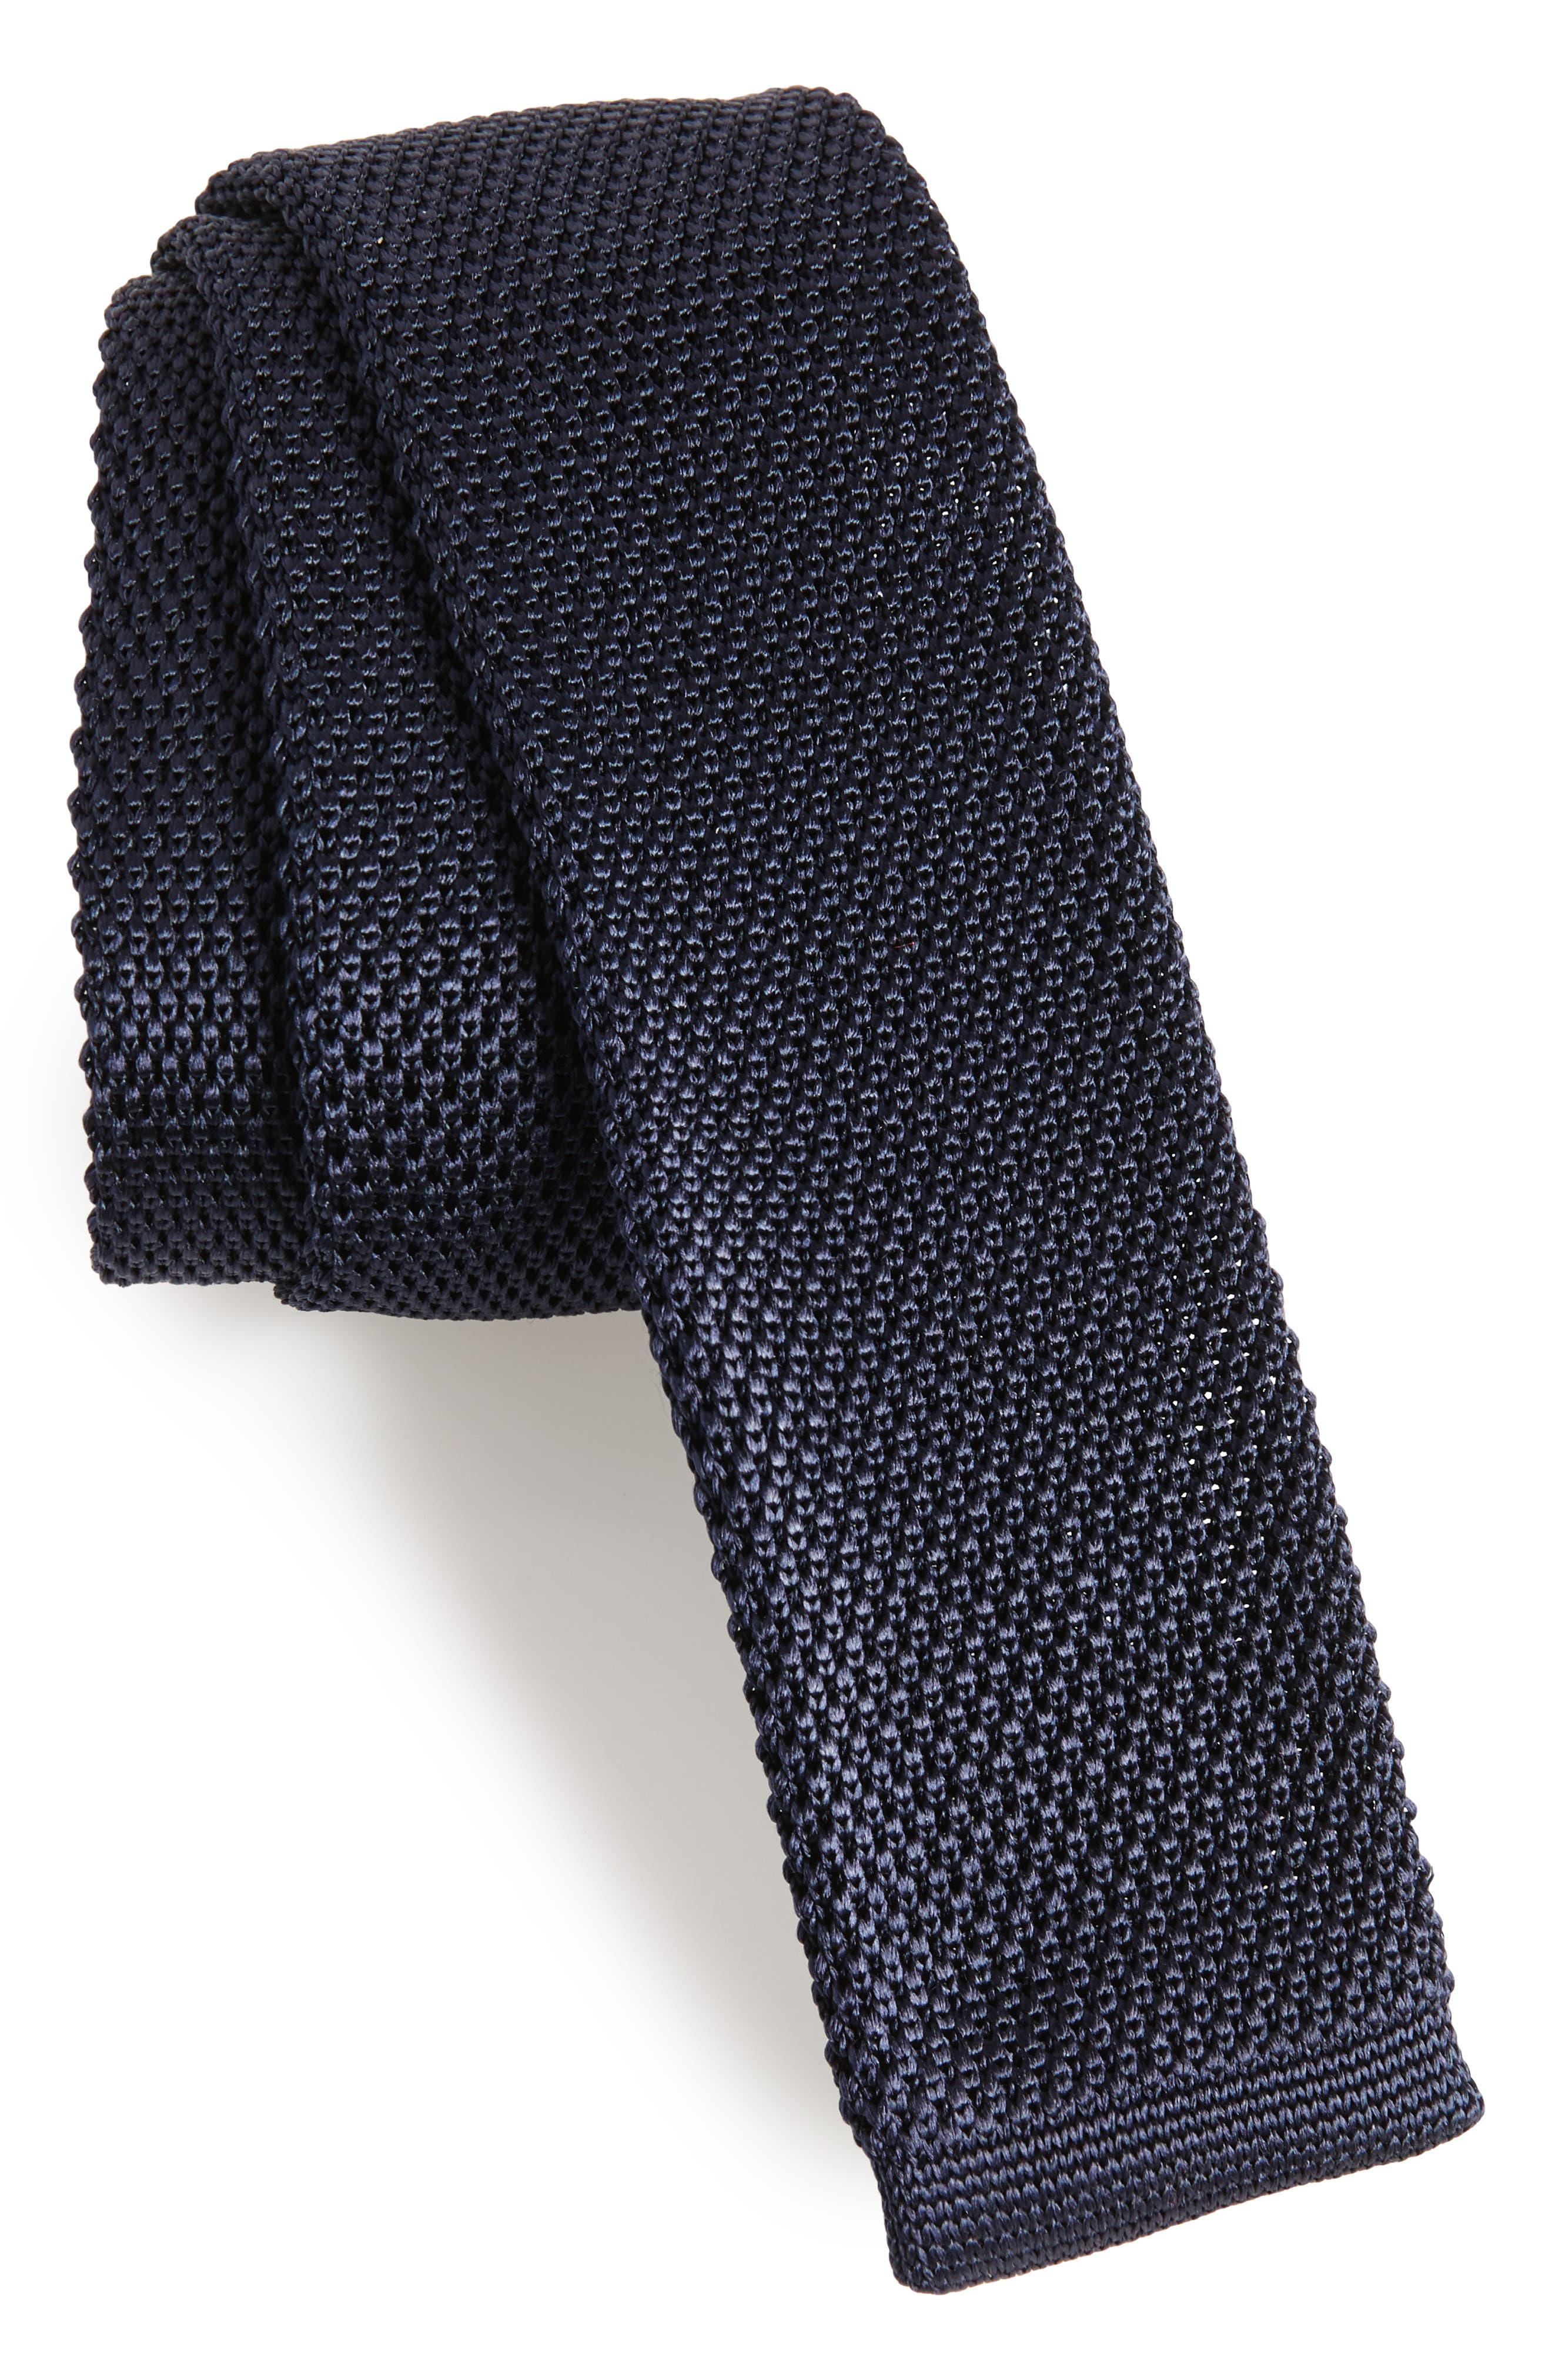 Solid Knit Silk Skinny Tie,                             Main thumbnail 1, color,                             410